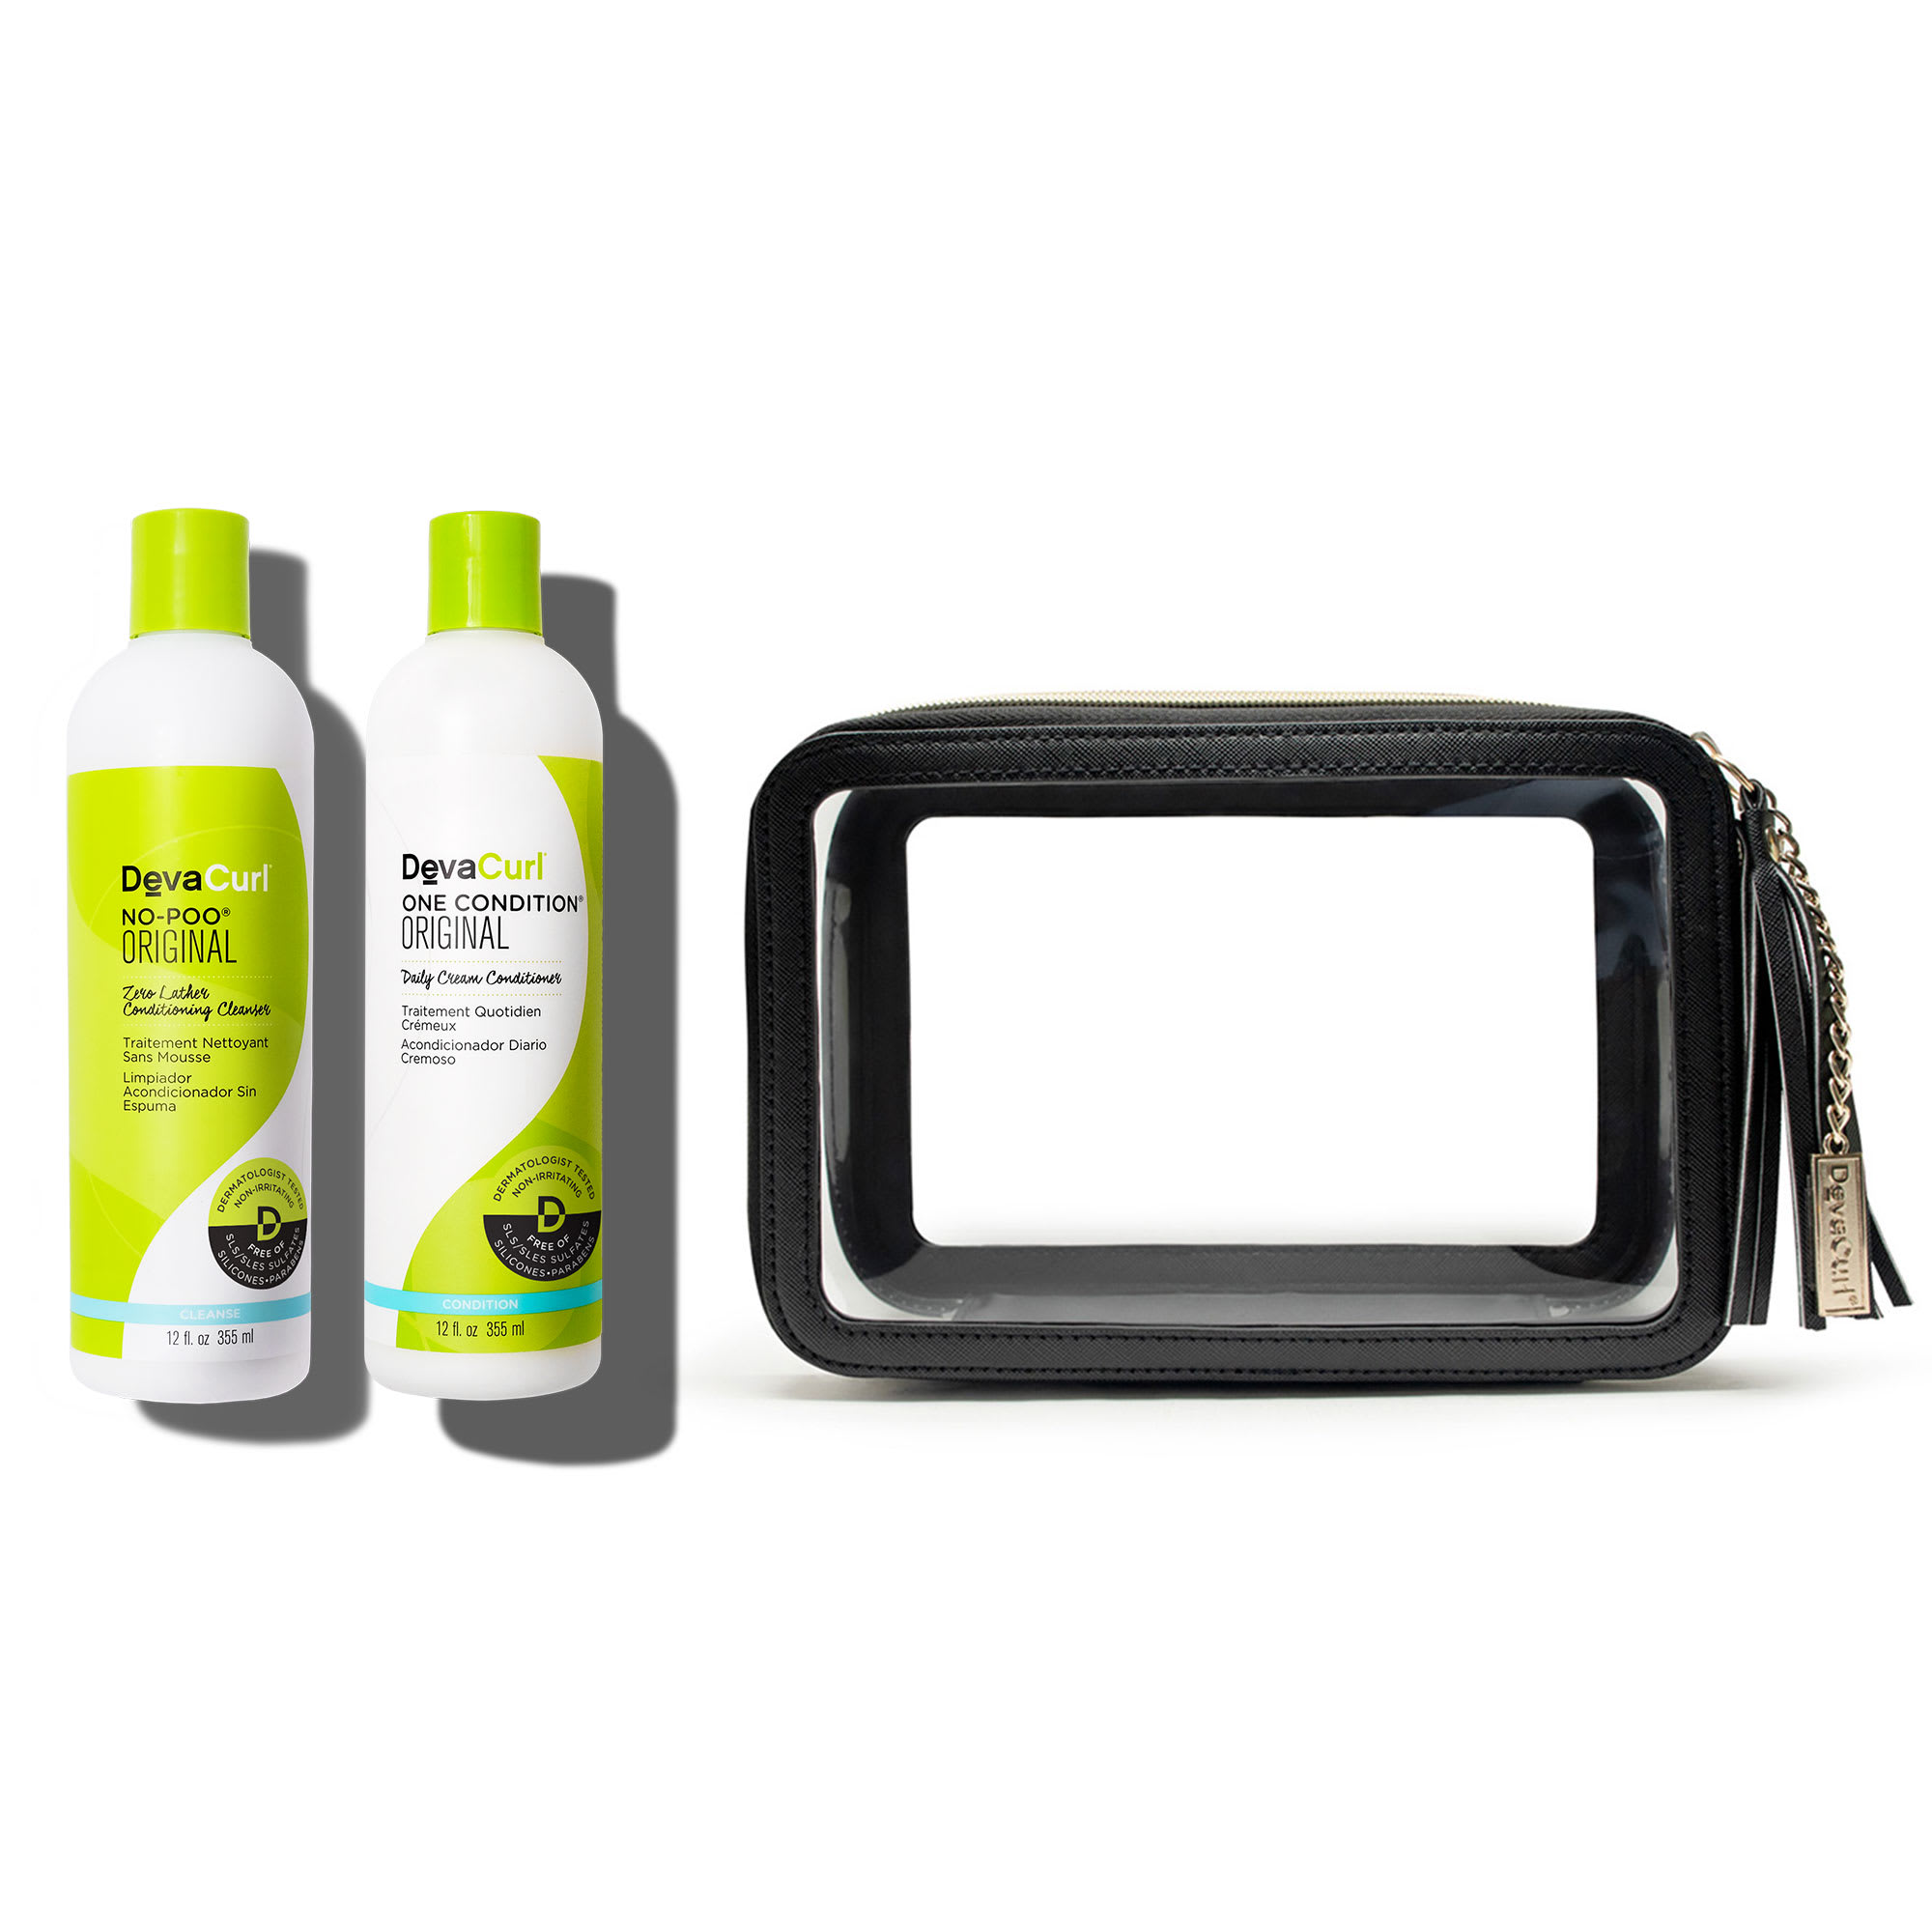 Original cleanser and conditioner bottles + DevaTravel case